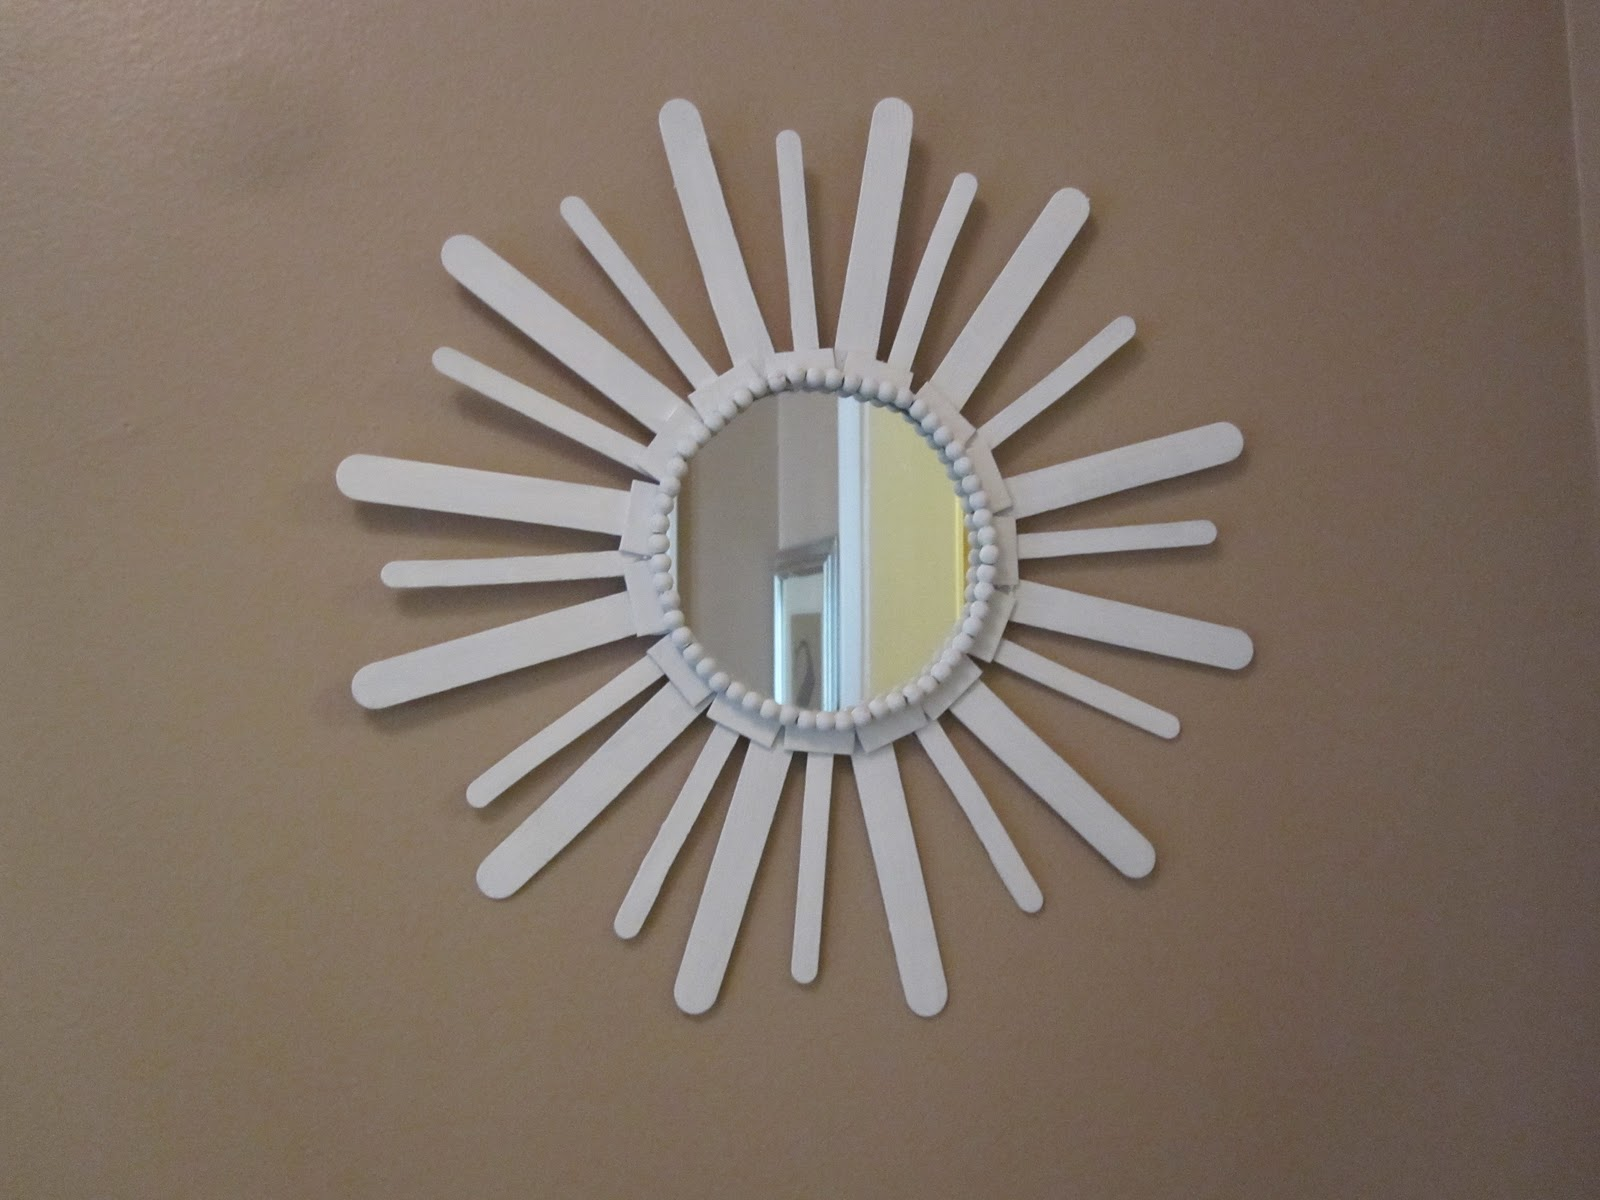 Small round mirrors for crafts - Small And Large Wooden Craft Sticks Basically The Same Thing As Popsicle Sticks And Tongue Depressors A Round Mirror Purchased From Michaels Hot Glue